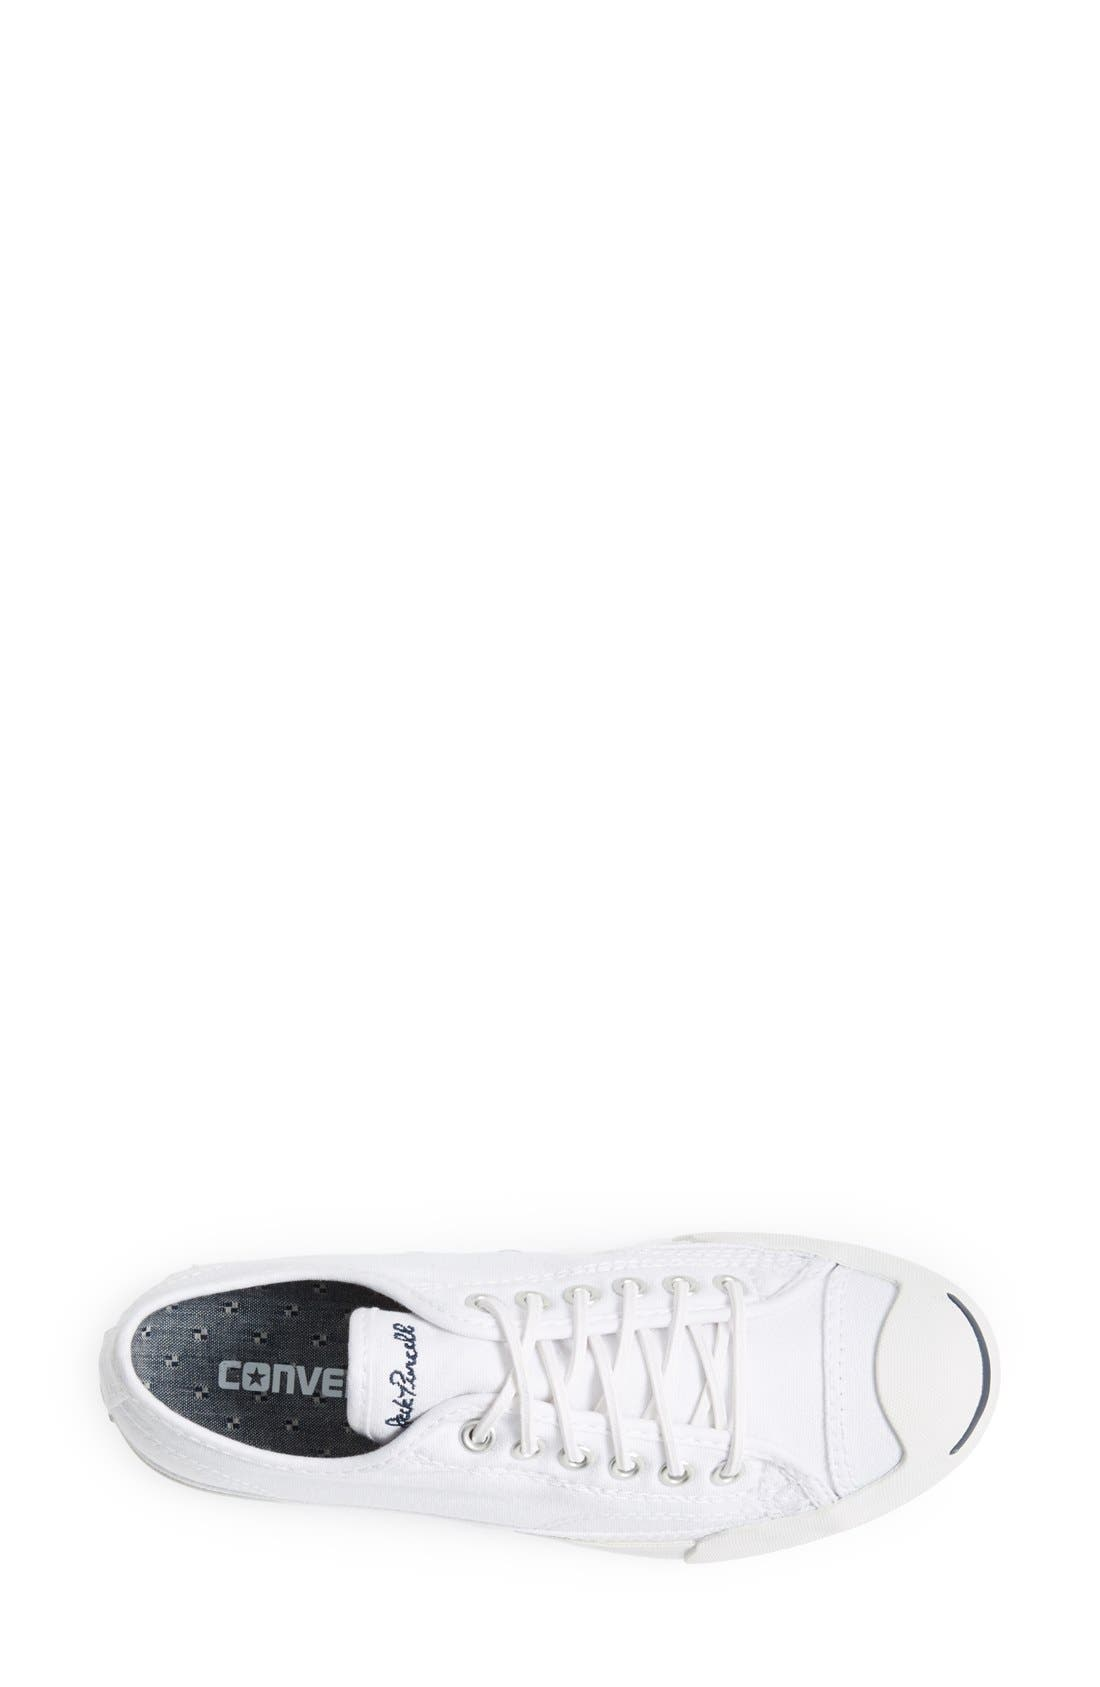 Alternate Image 4  - Converse 'Jack Purcell - LP' Low Top Sneaker (Women)